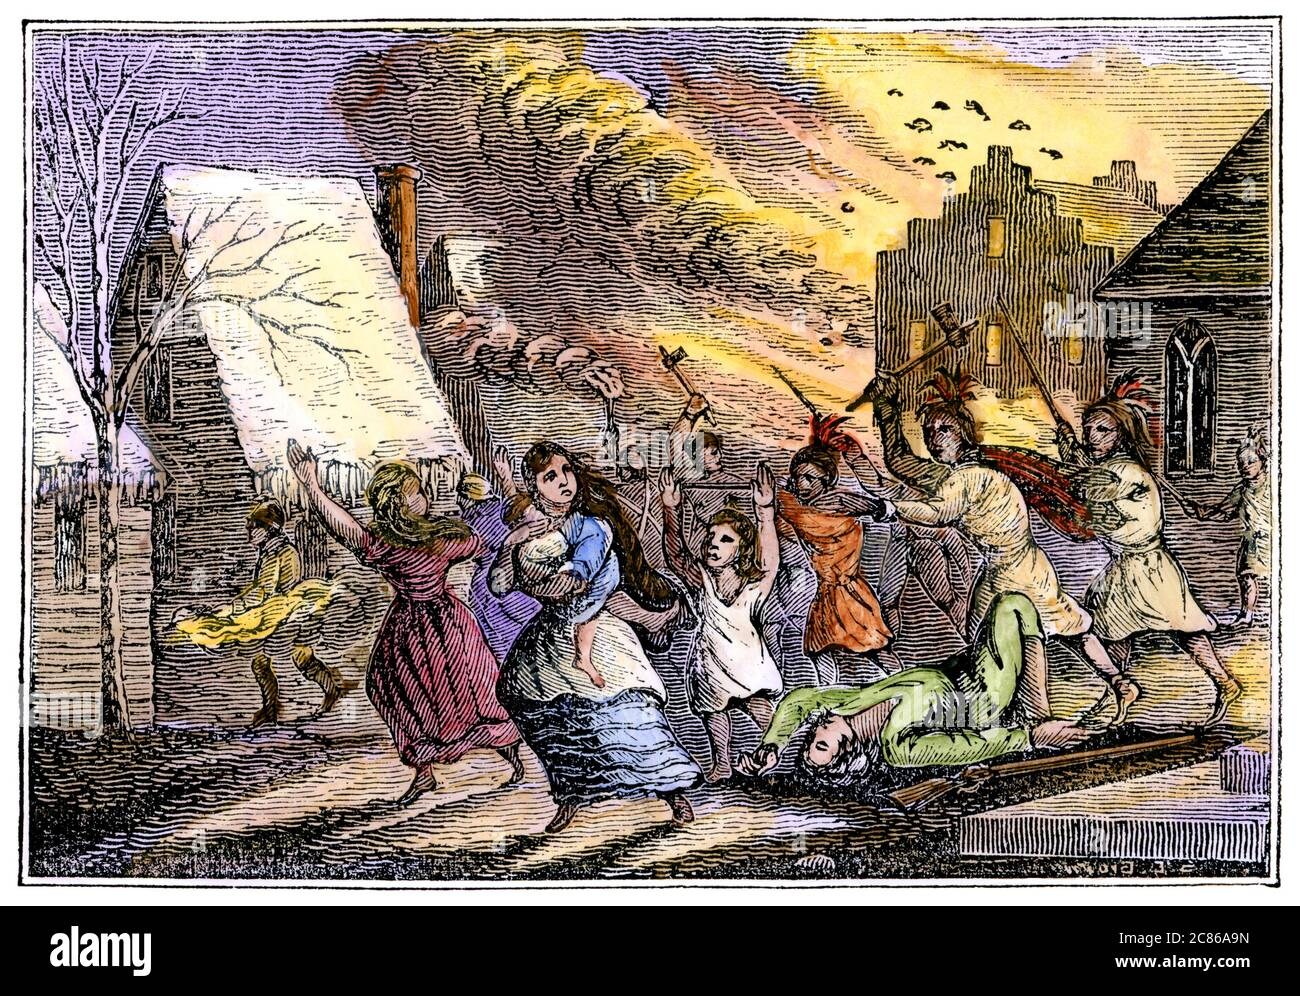 Destruction of Schenectady NY by French and Algonquin forces, 1690. Hand-colored woodcut Stock Photo